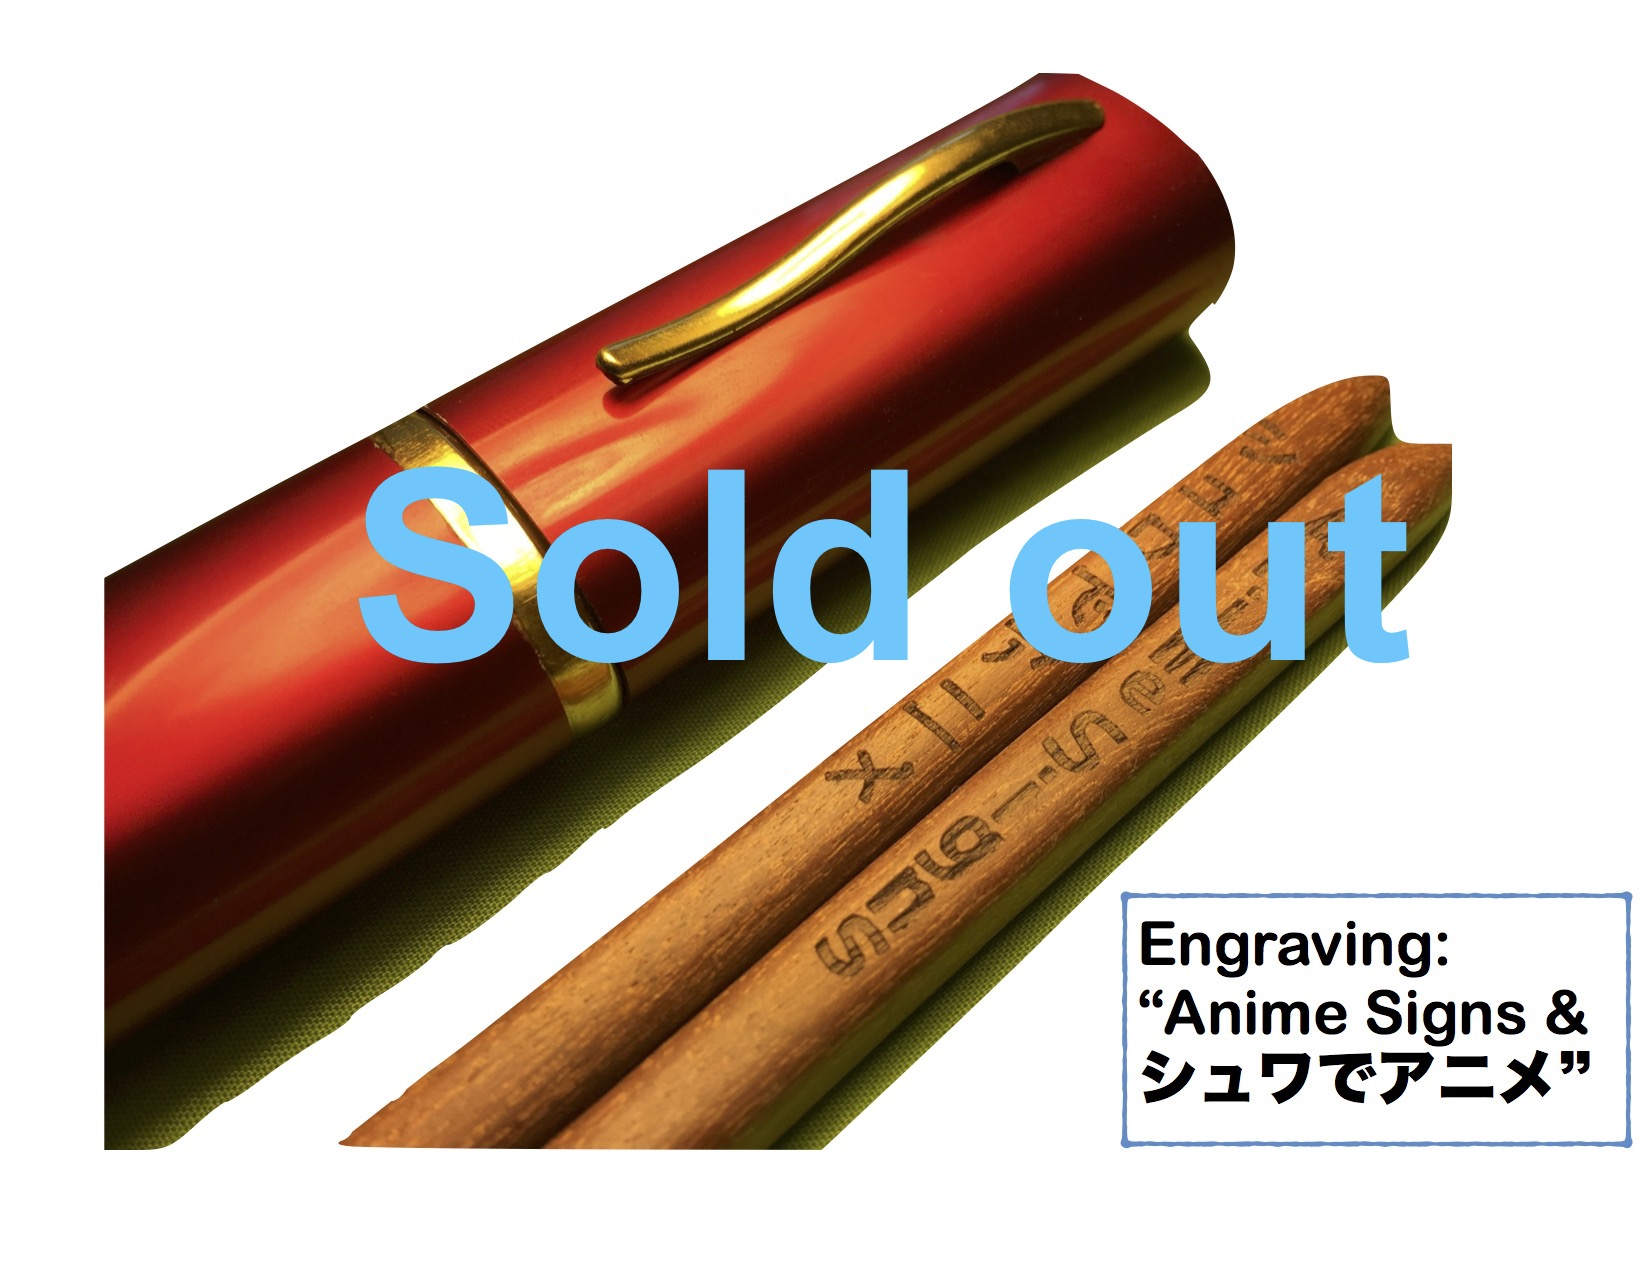 Travel Chopsticks for Amazon by DeafJapan Sold out.jpg